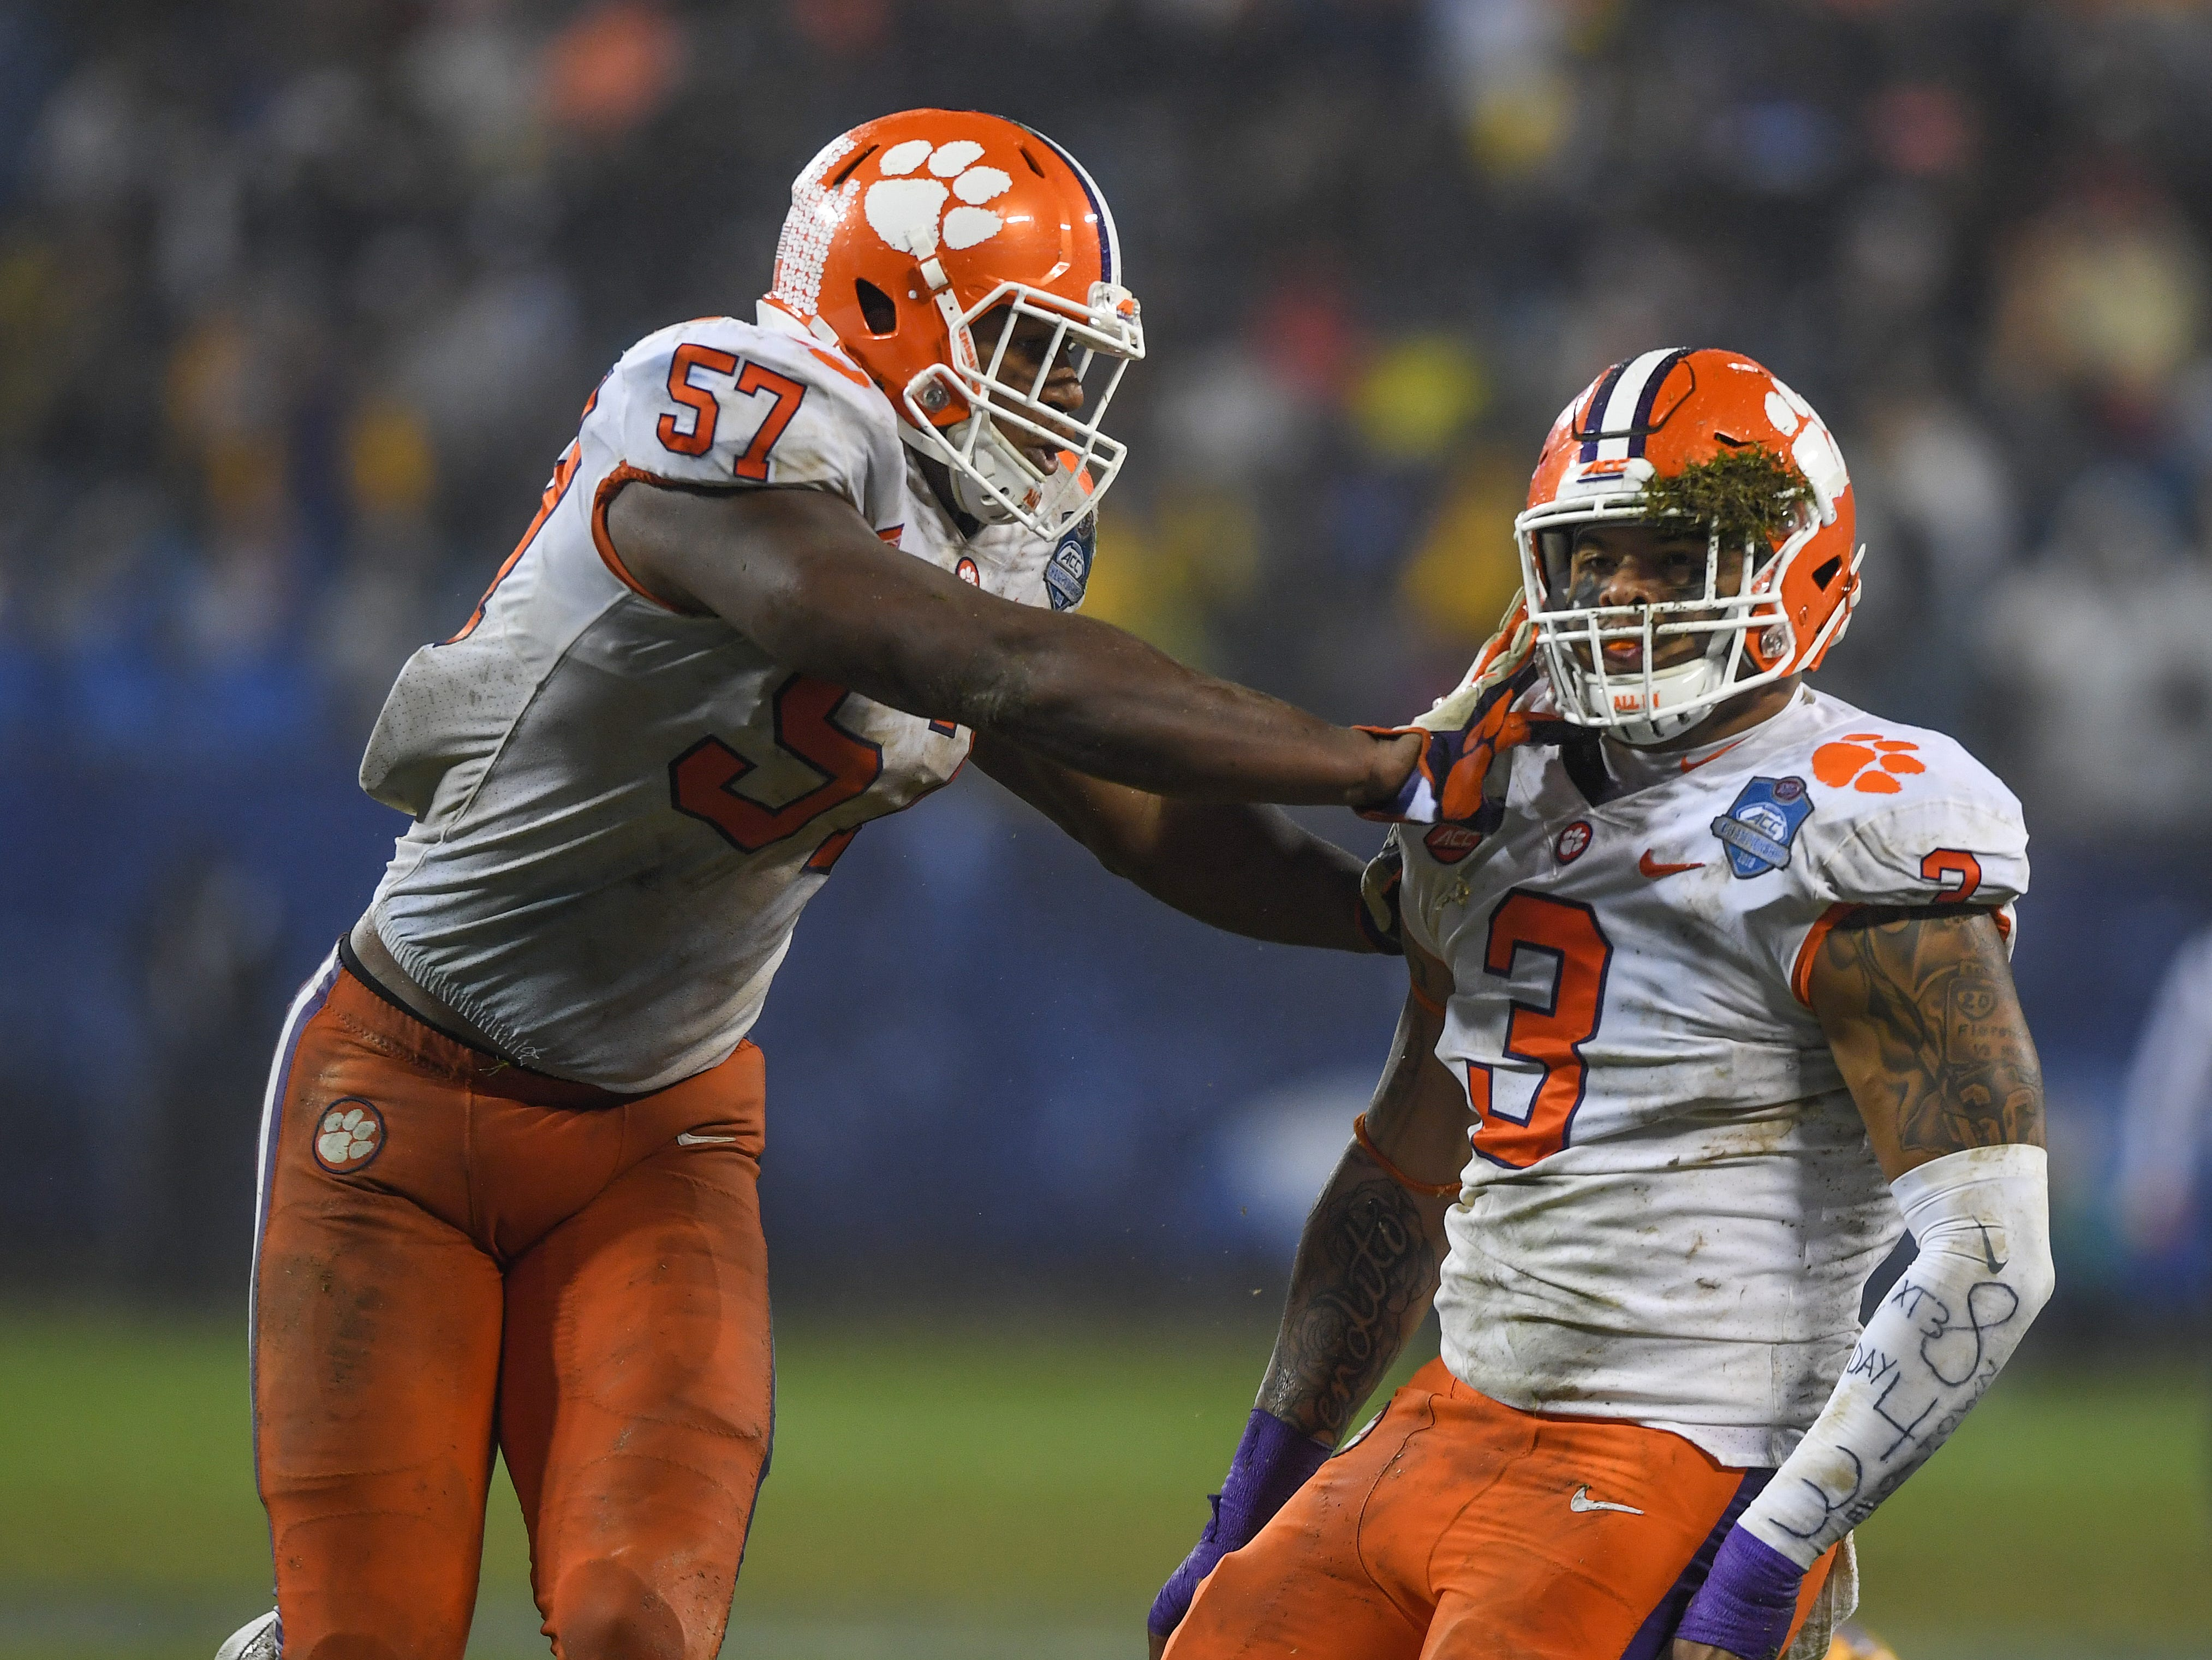 Clemson defensive lineman Xavier Thomas (3) celebrates with linebacker Tre Lamar (57) after stopping Pittsburgh running back Qadree Ollison (30) during the 3rd quarter of the Dr. Pepper ACC Championship at Bank of America Stadium in Charlotte, N.C. Saturday, December 1, 2018.